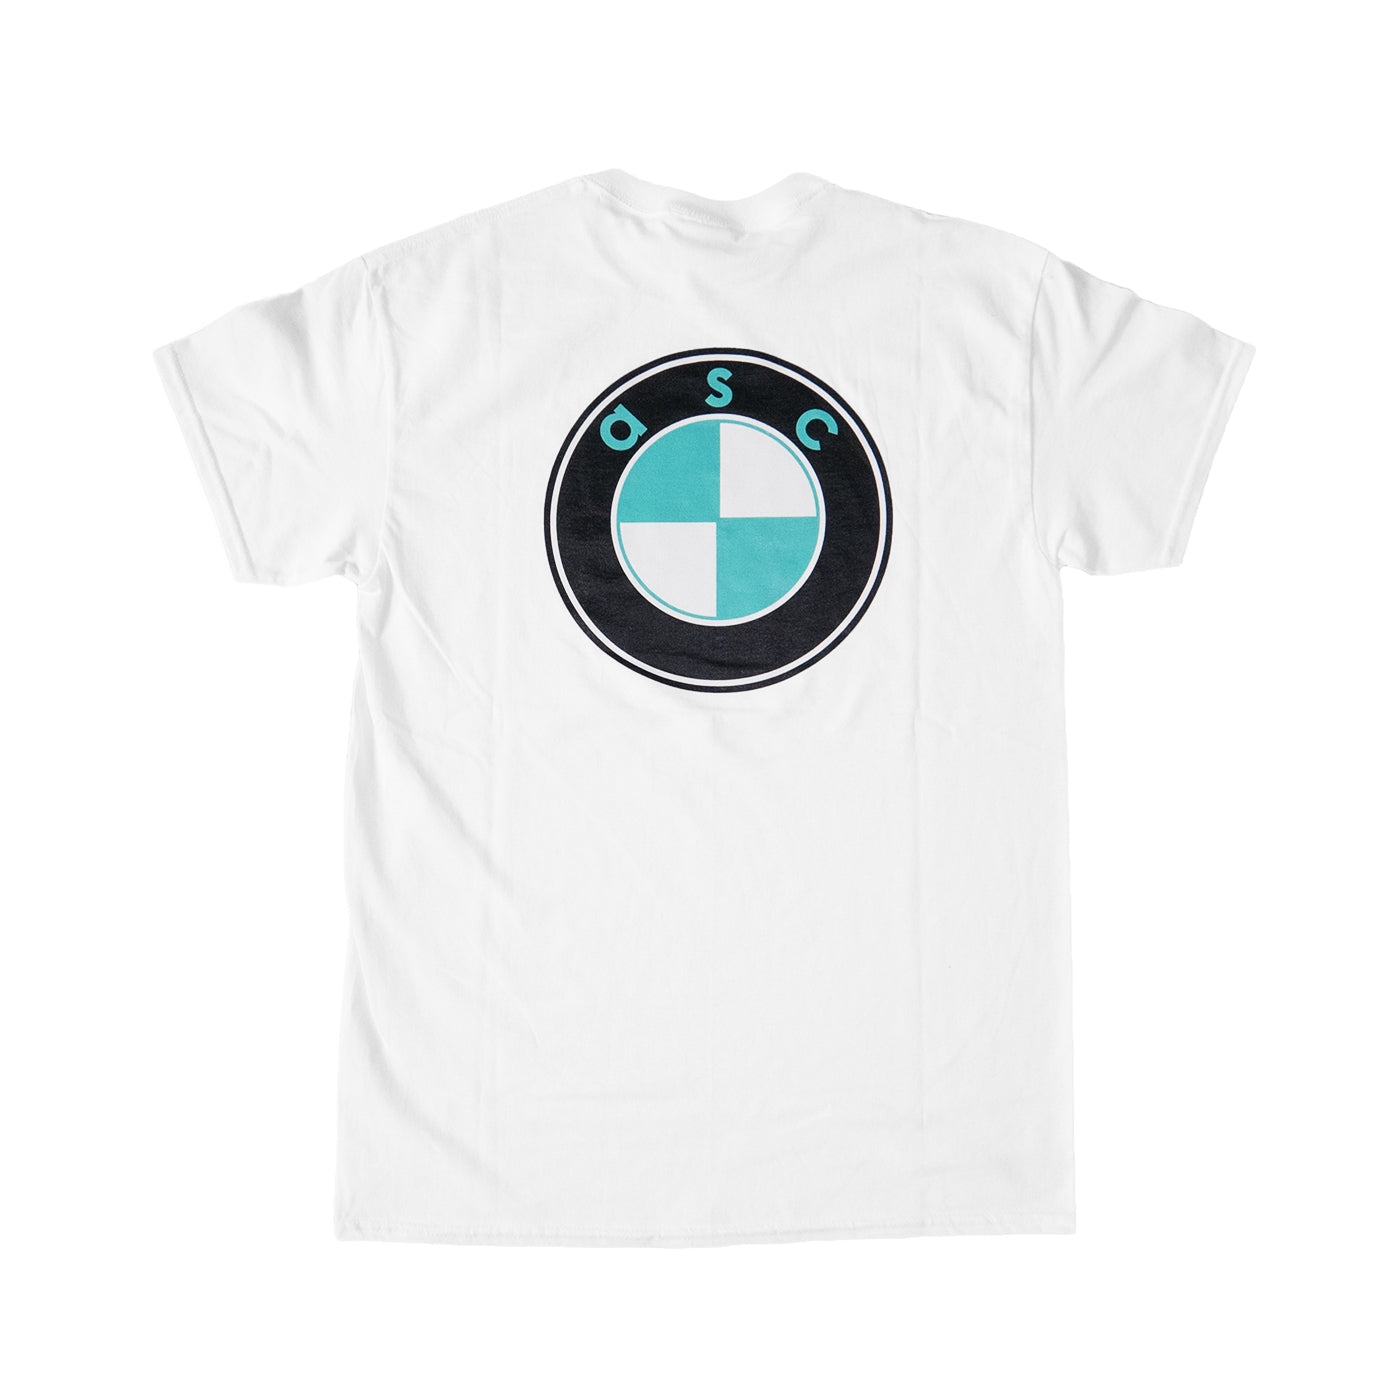 alter skateboard co bimmer t-shirt white